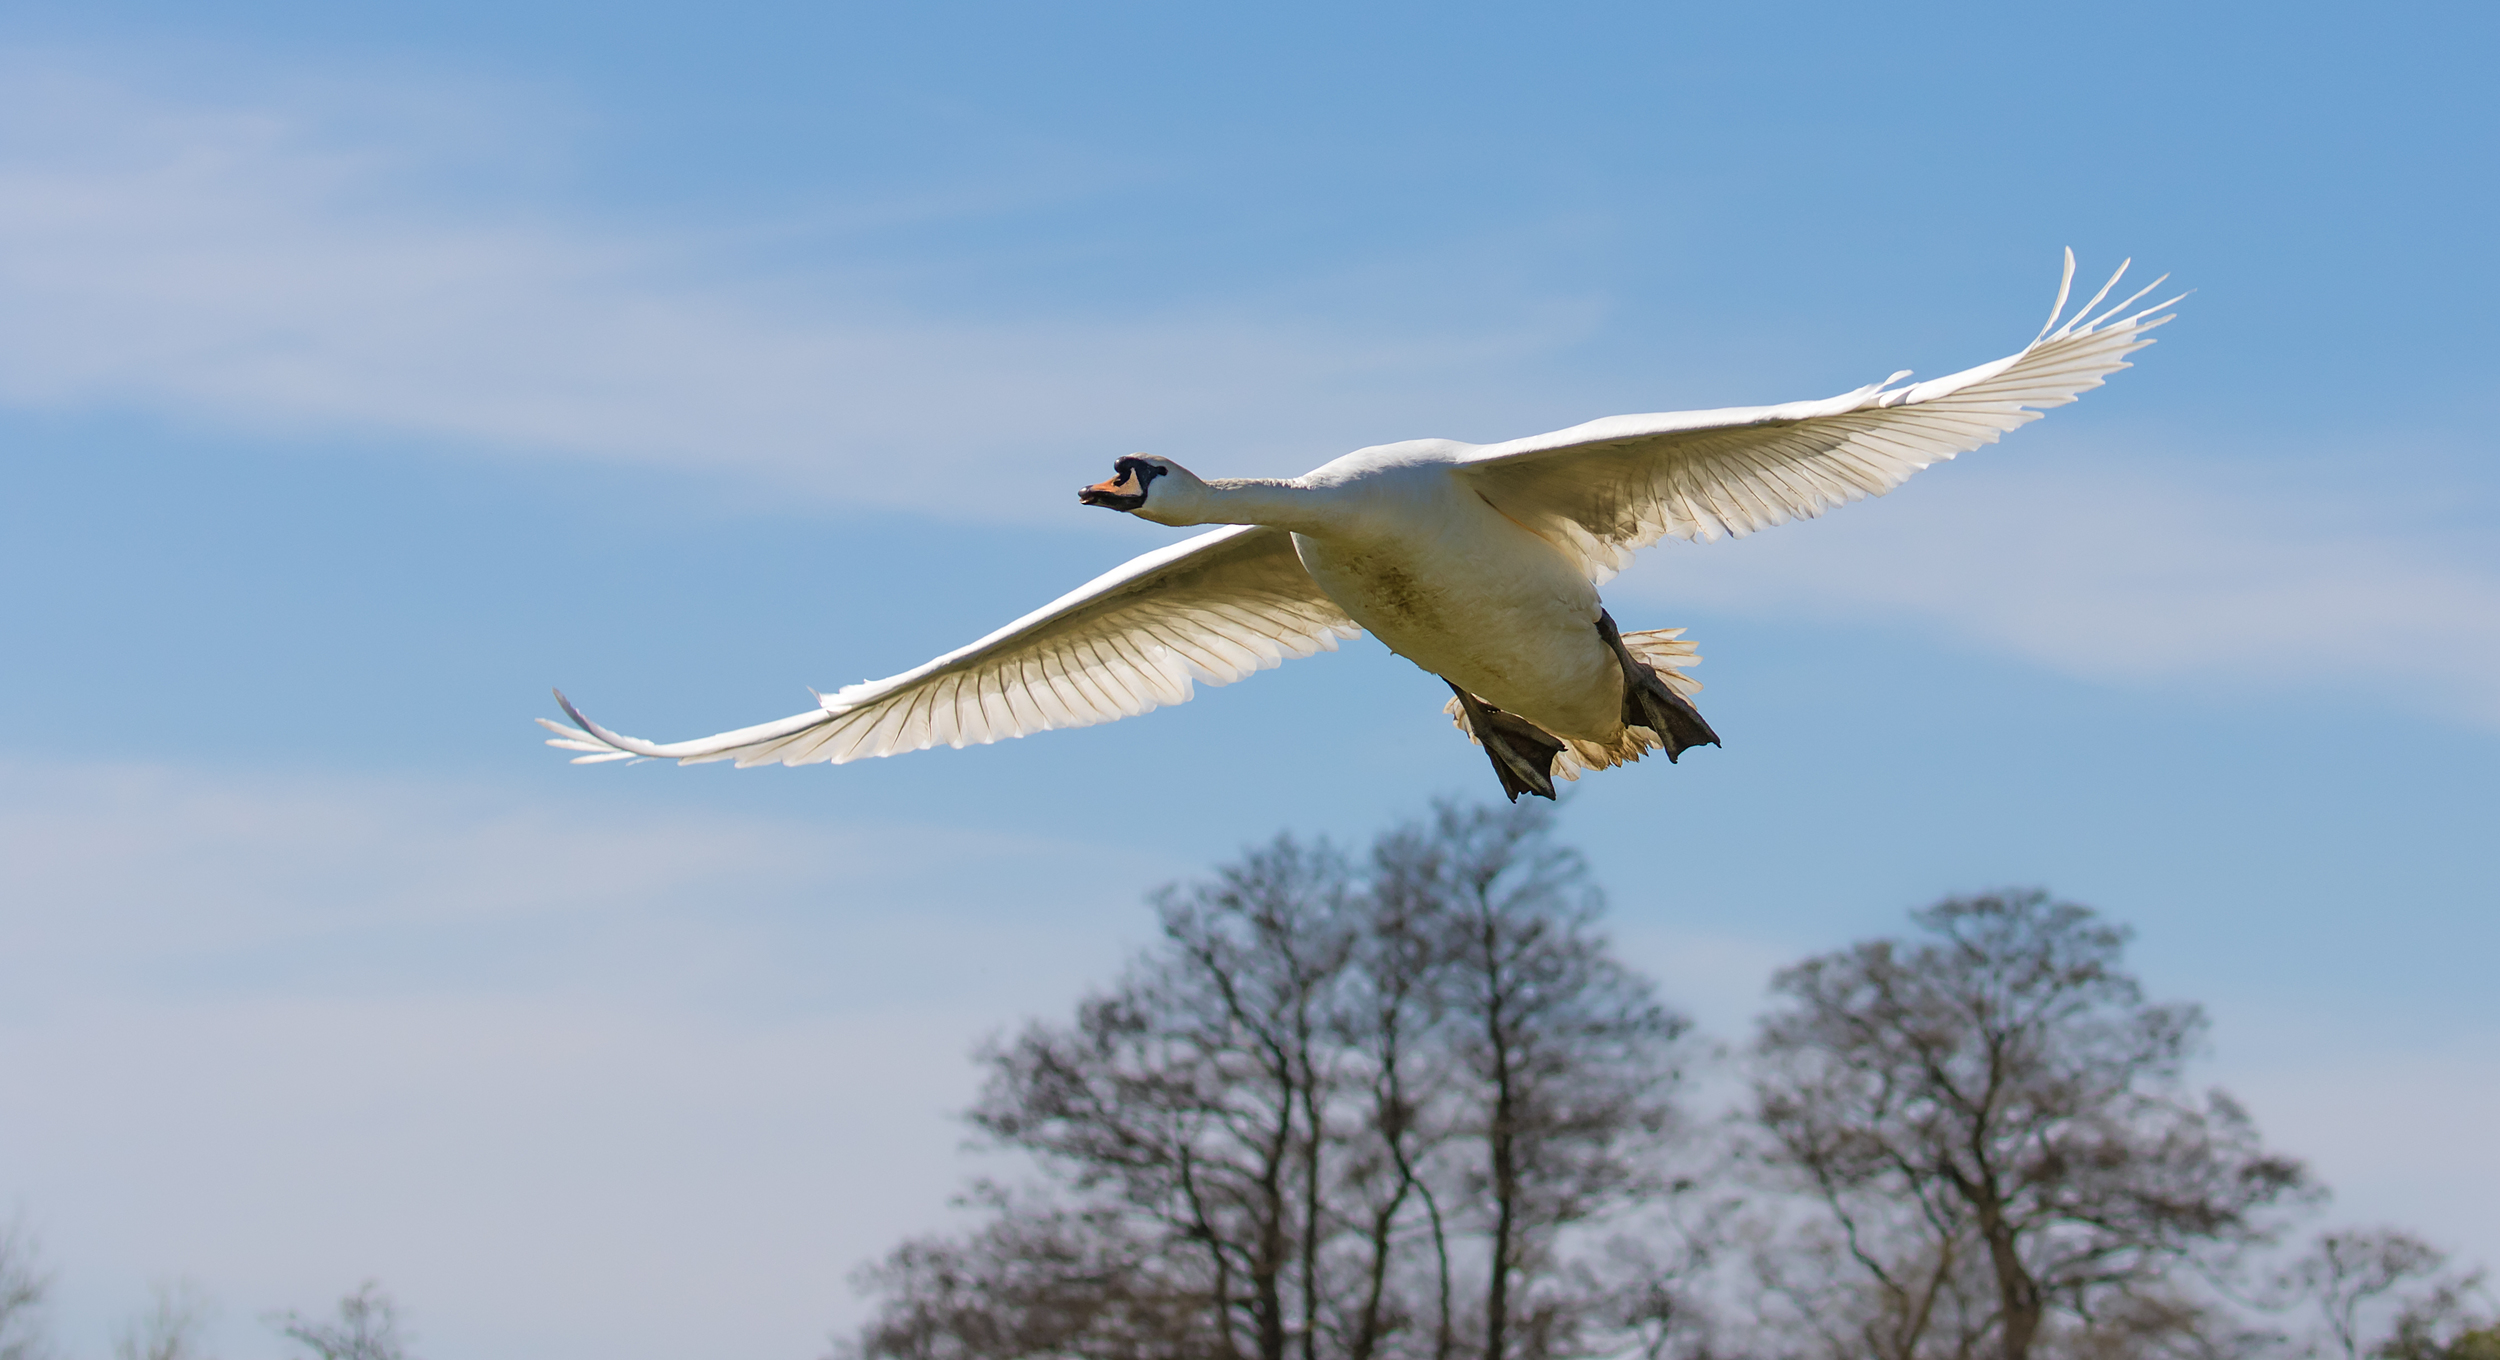 Swan ascent after take off